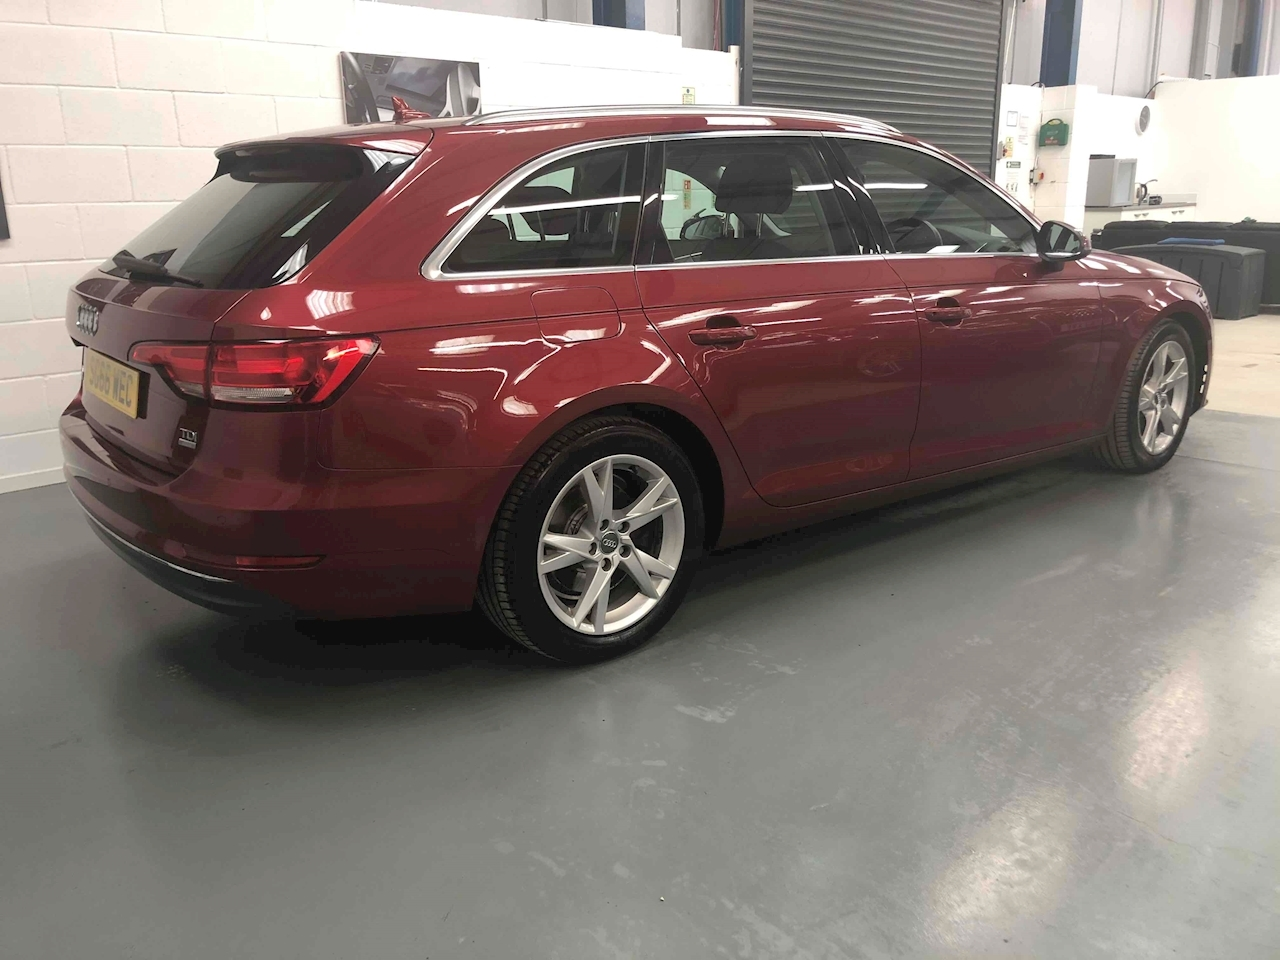 A4 Avant TDI ultra Sport Estate 2.0 Automatic Diesel